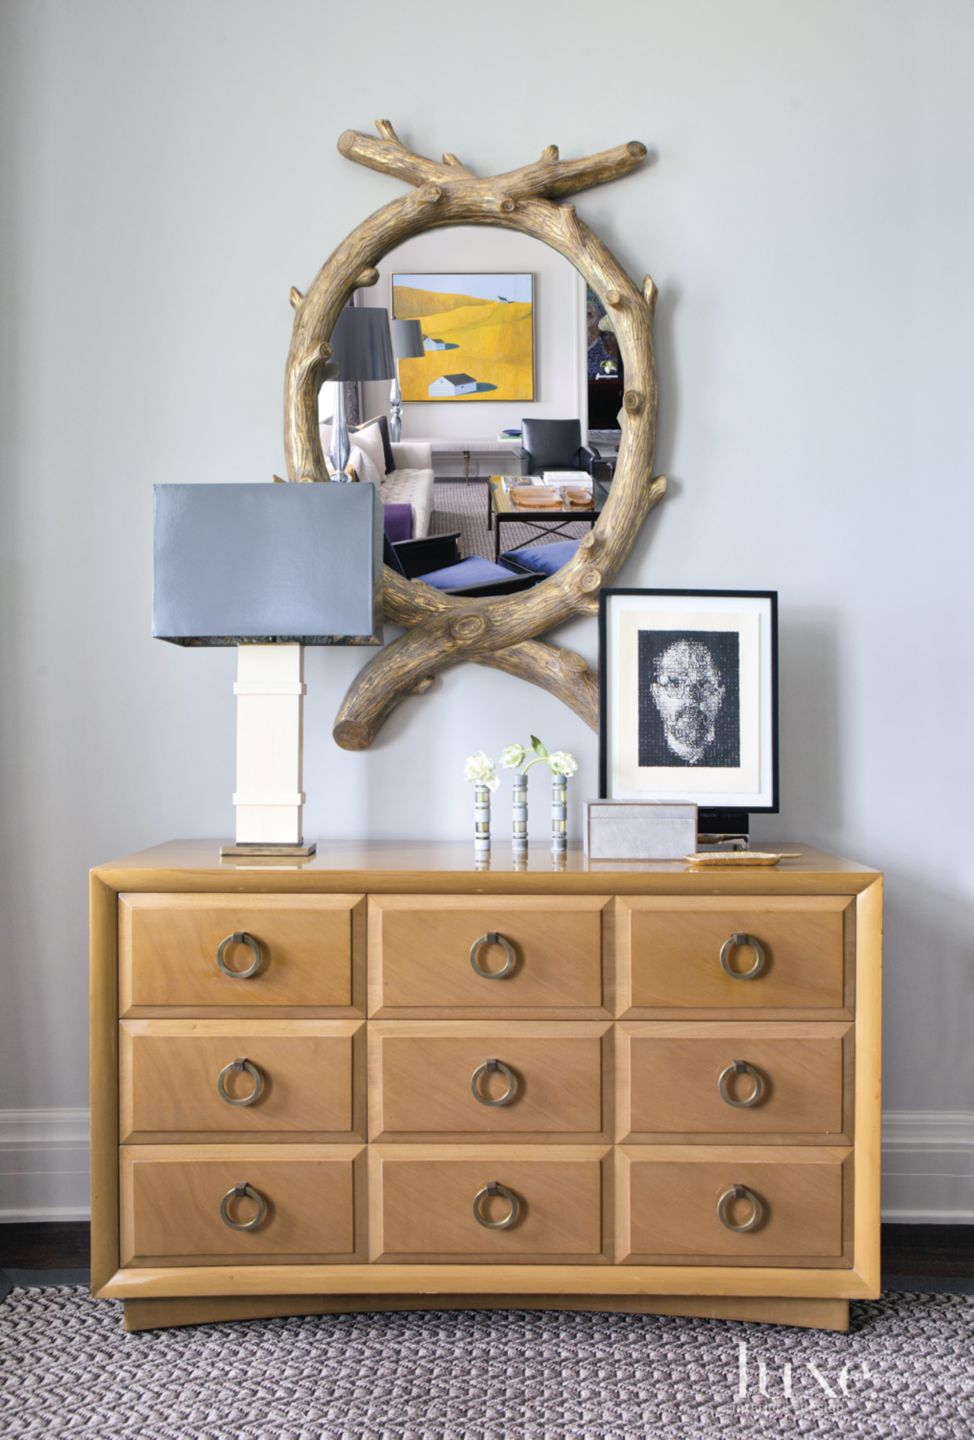 Eclectic Neutral Living Room Vignette with Antique Chest